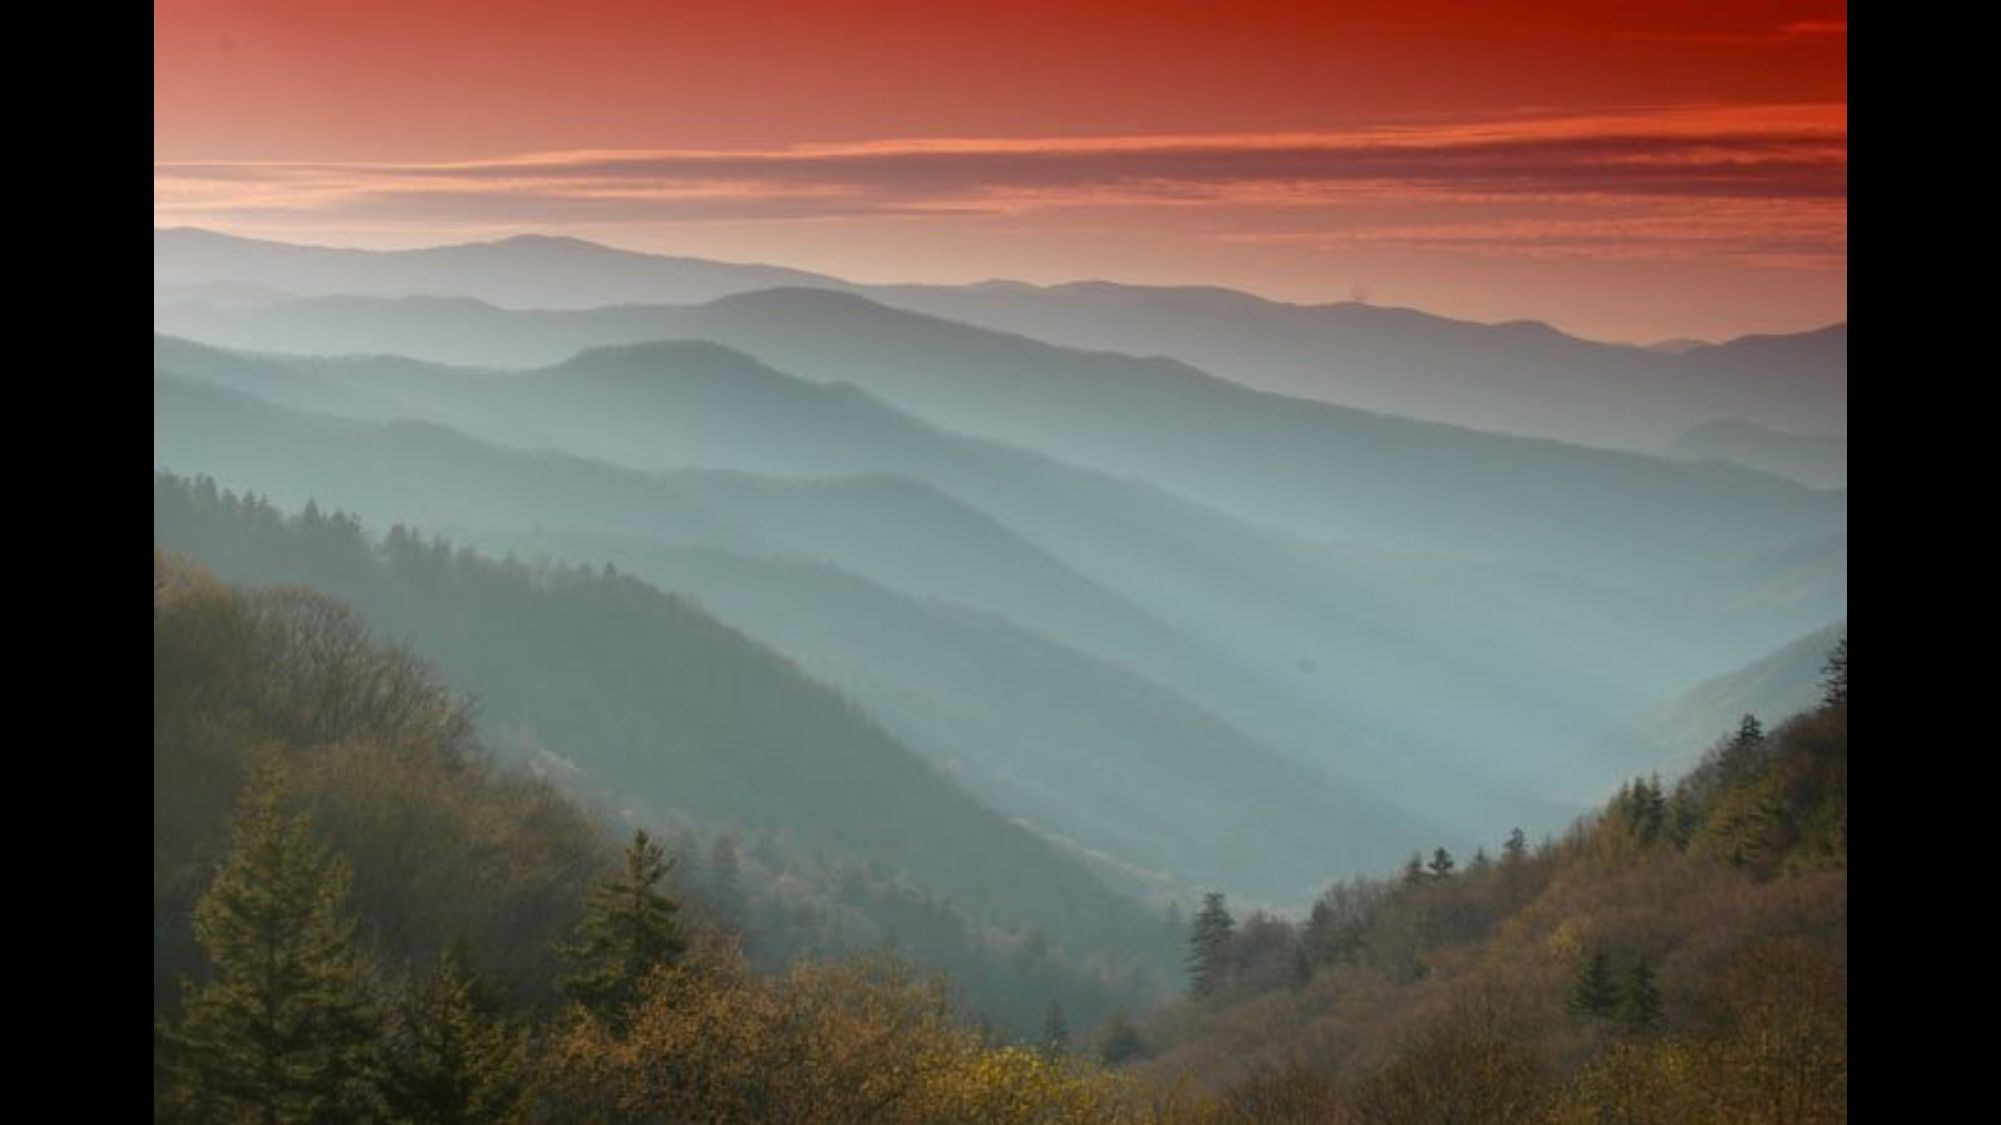 The beautiful Smoky Mountains!